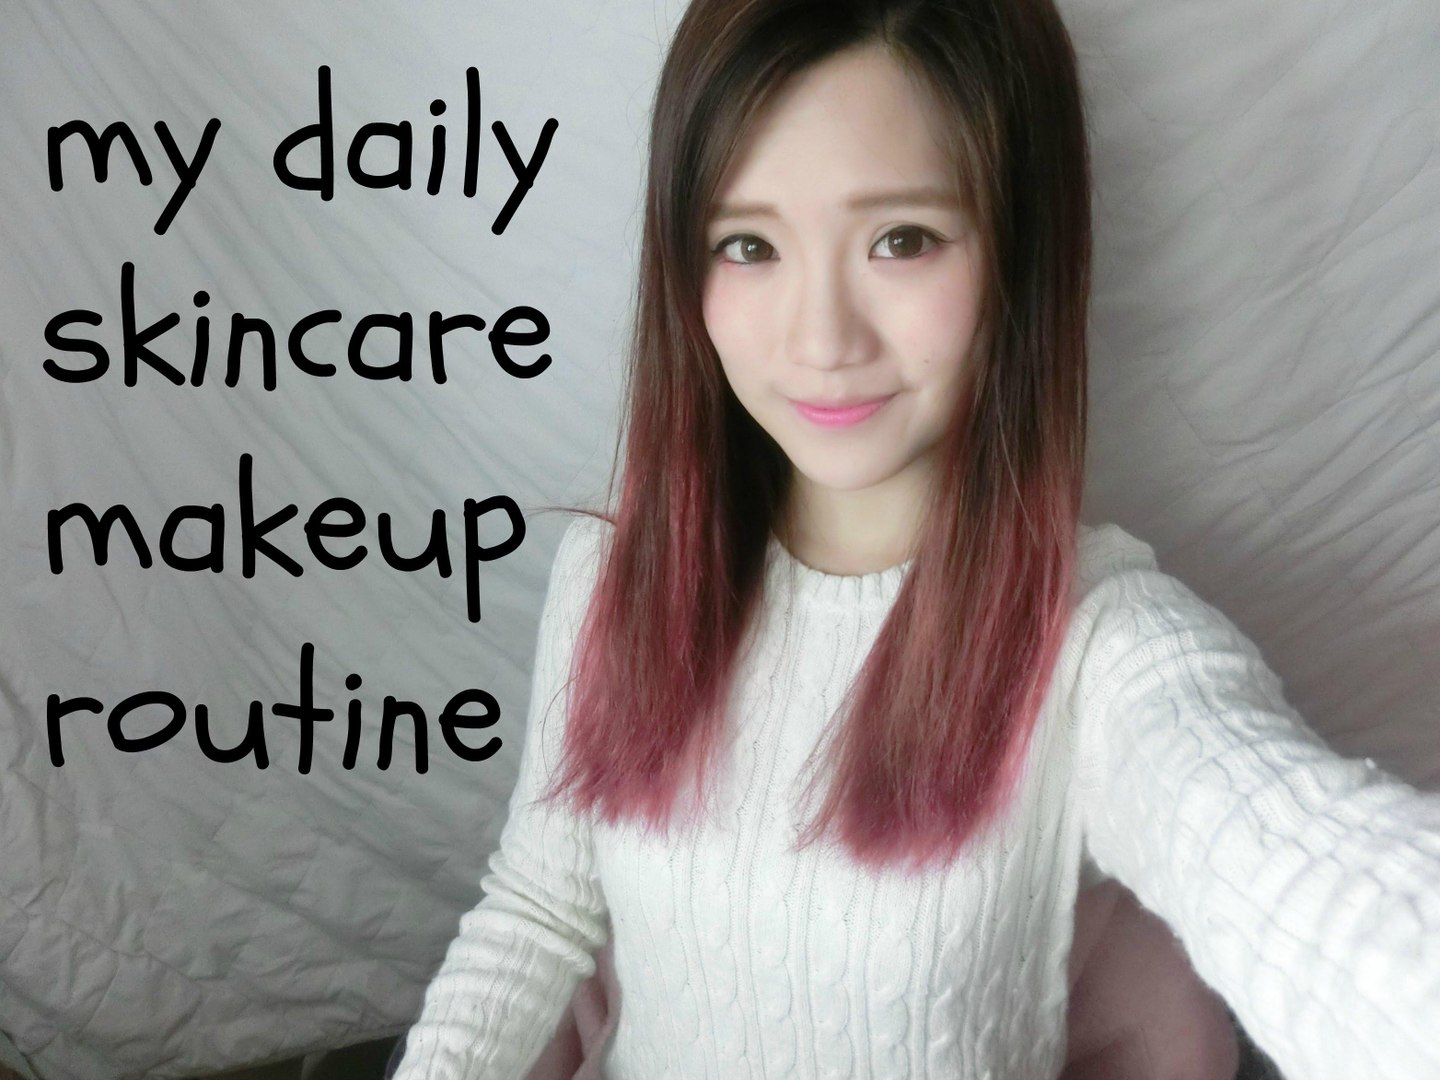 jcchung daily skincare + makeup routine